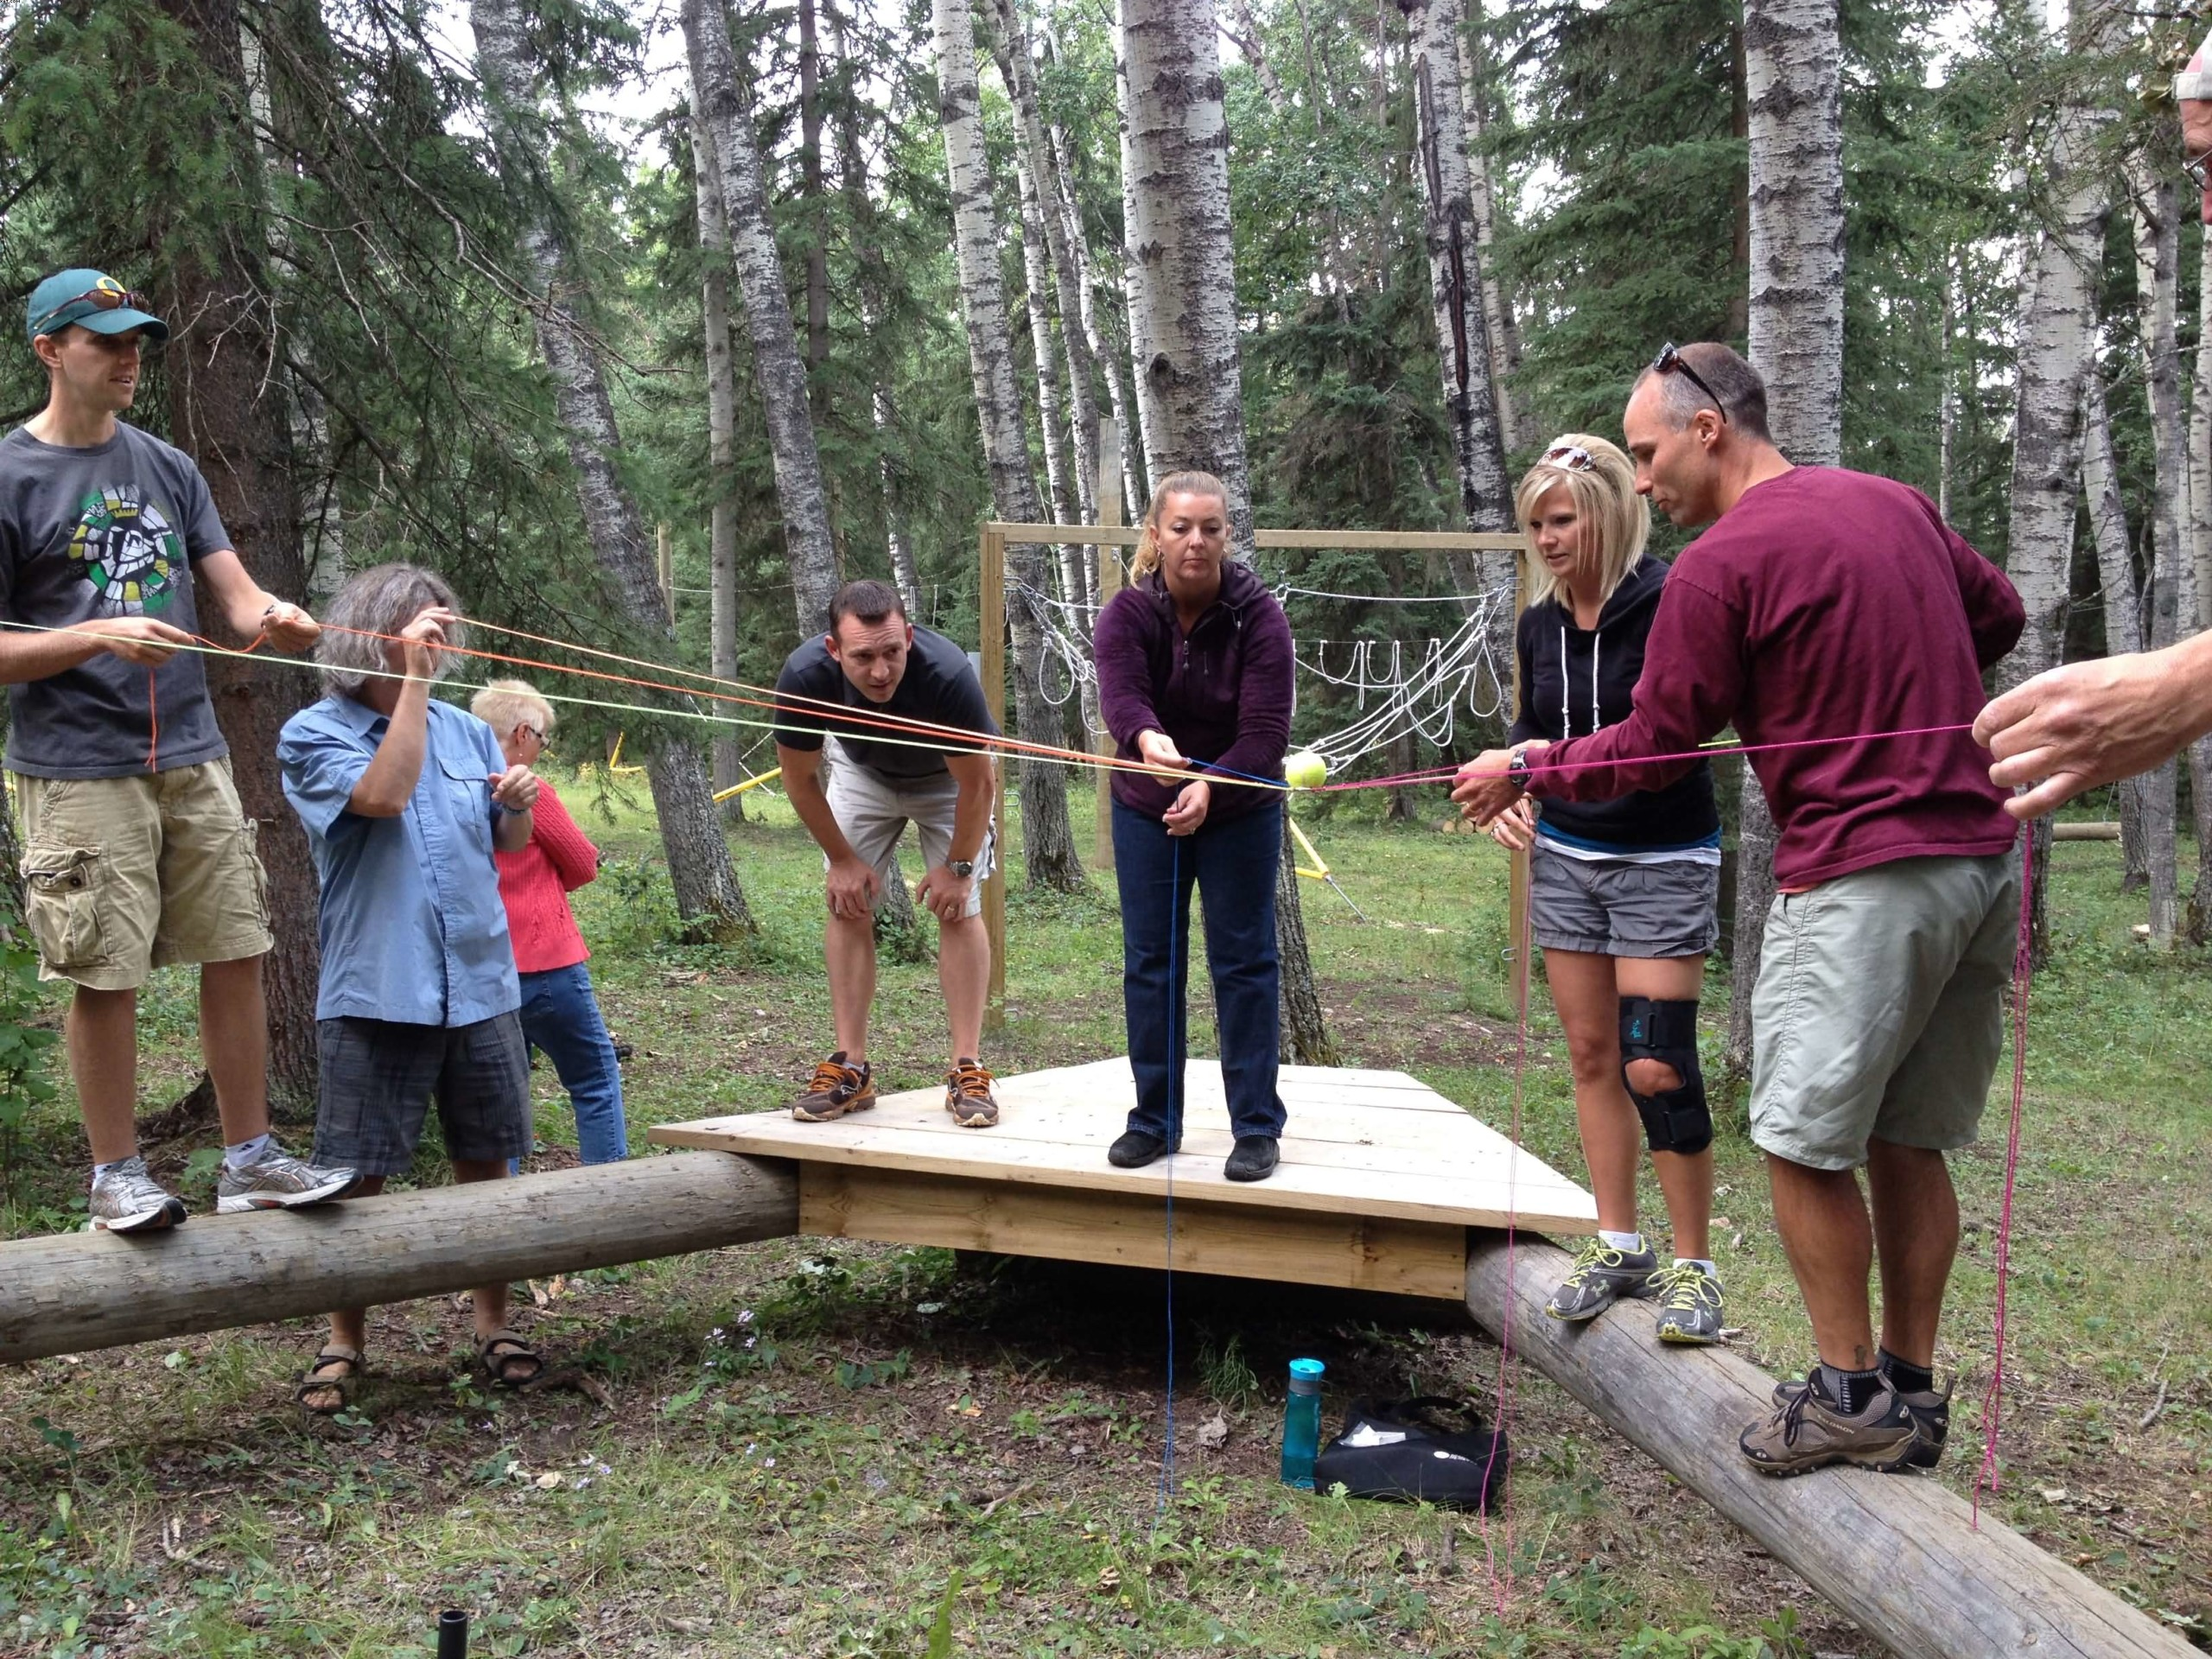 People complete low ropes challenge, focus on end goal